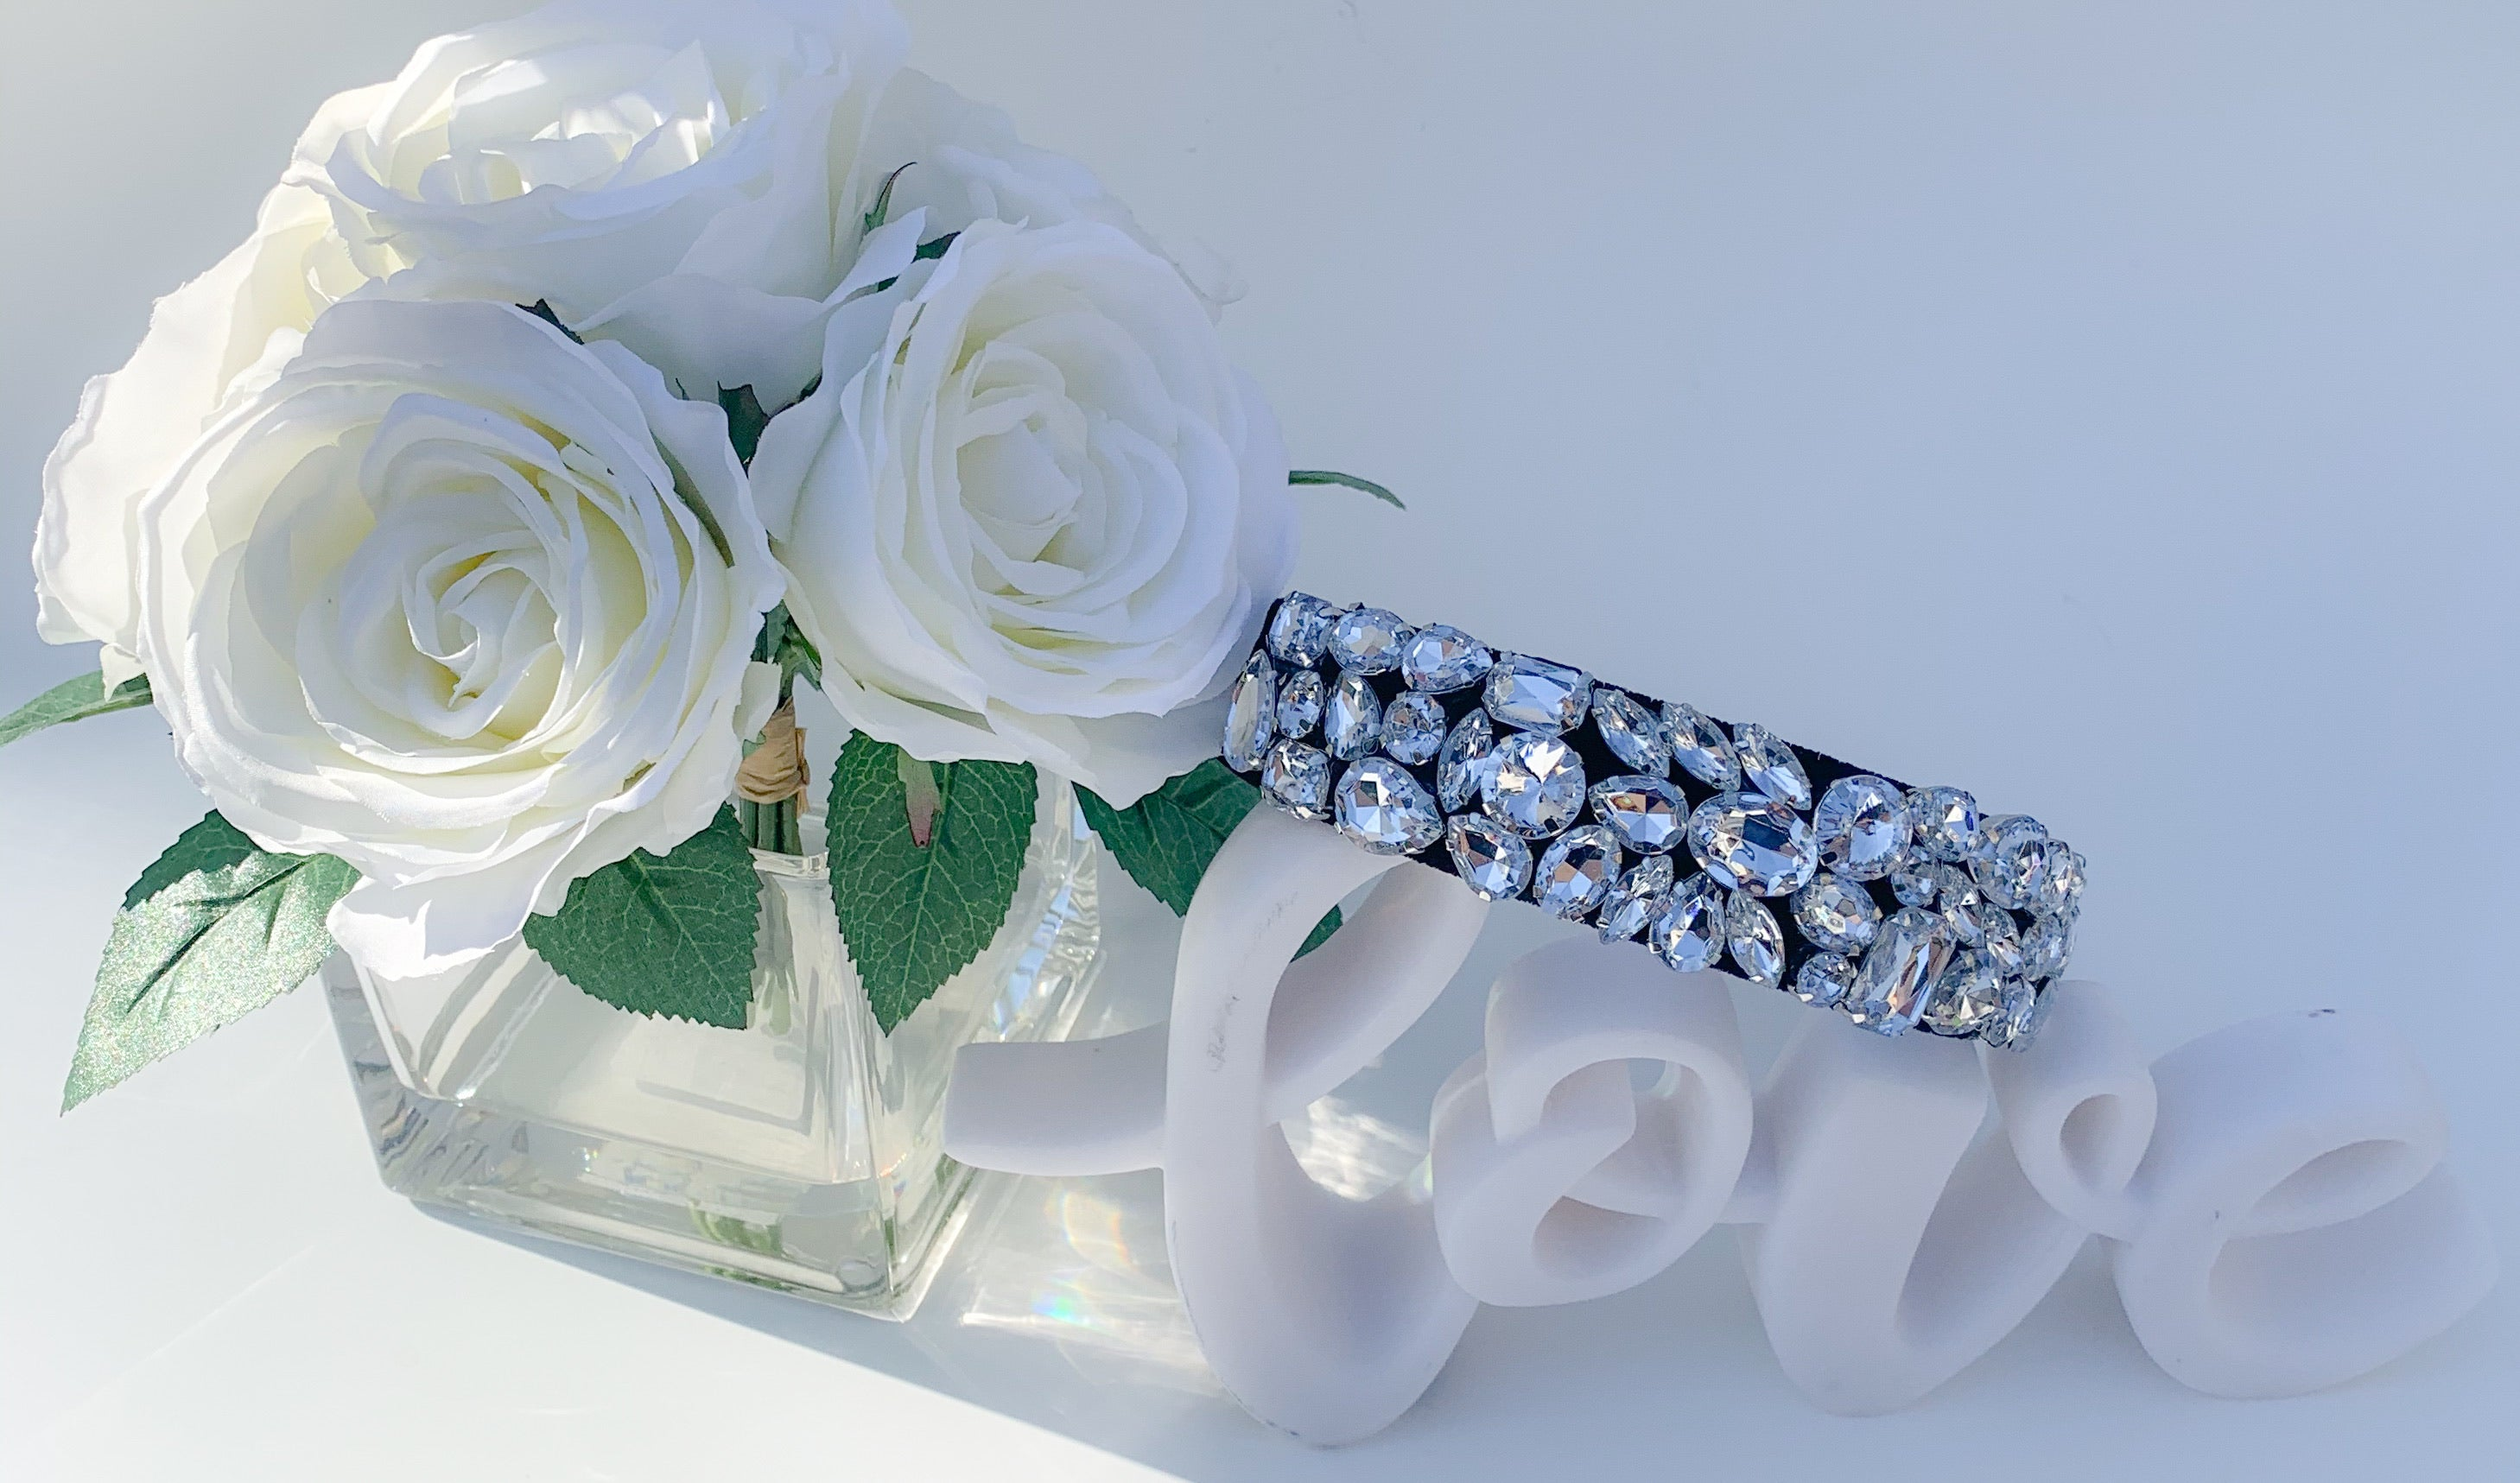 The sparkle and glam headband